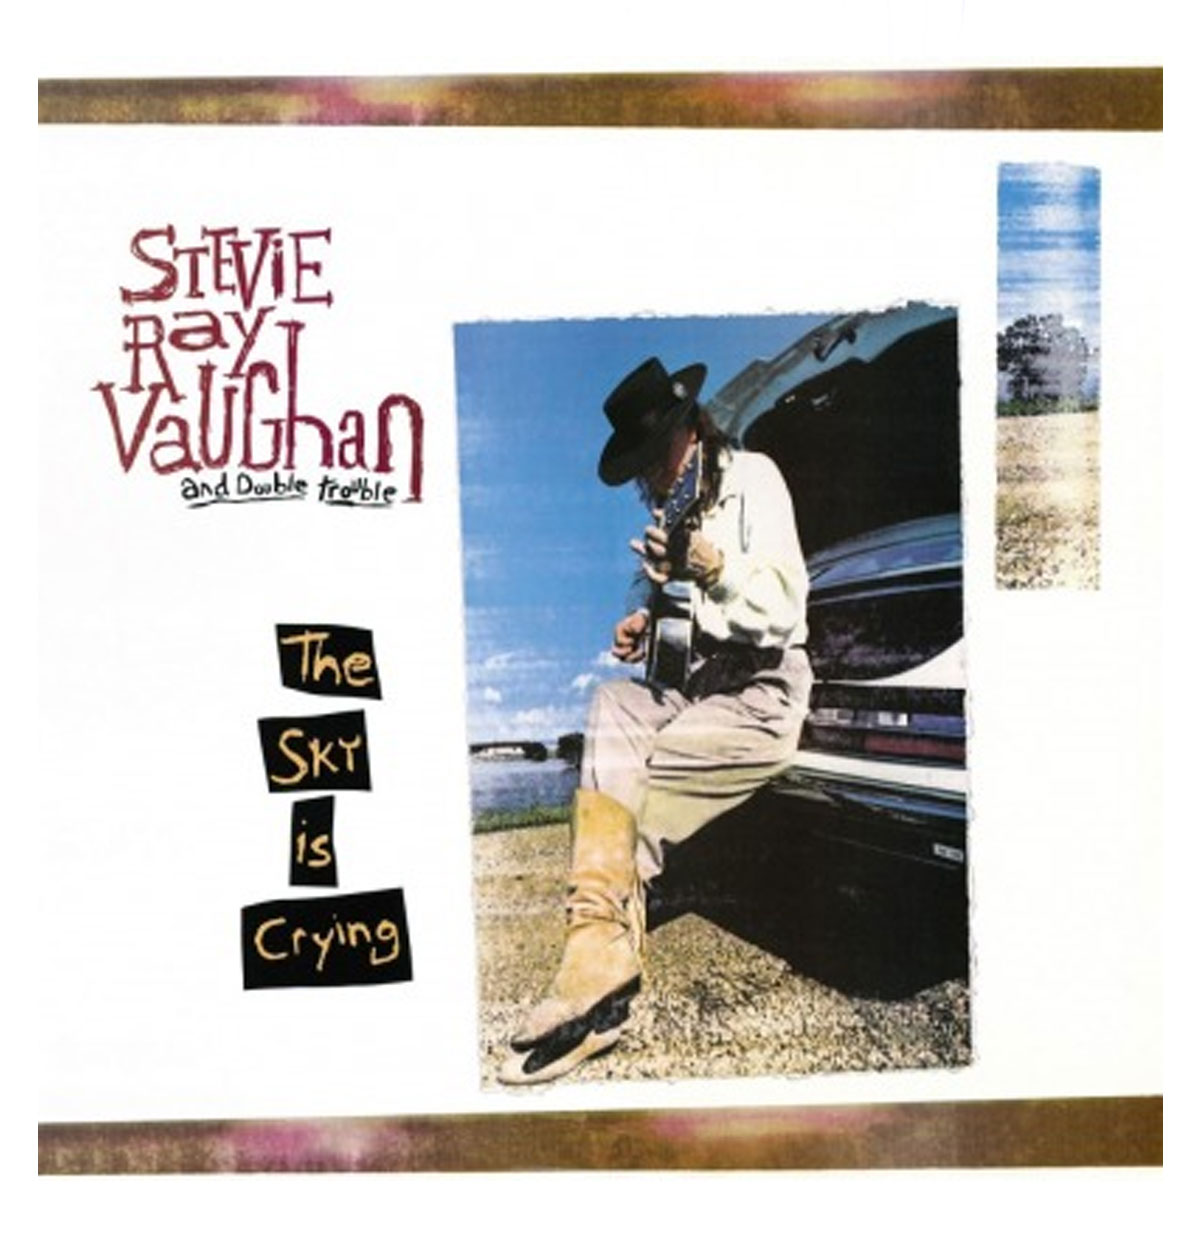 Stevie Ray Vaughan - The Sky Is Crying LP